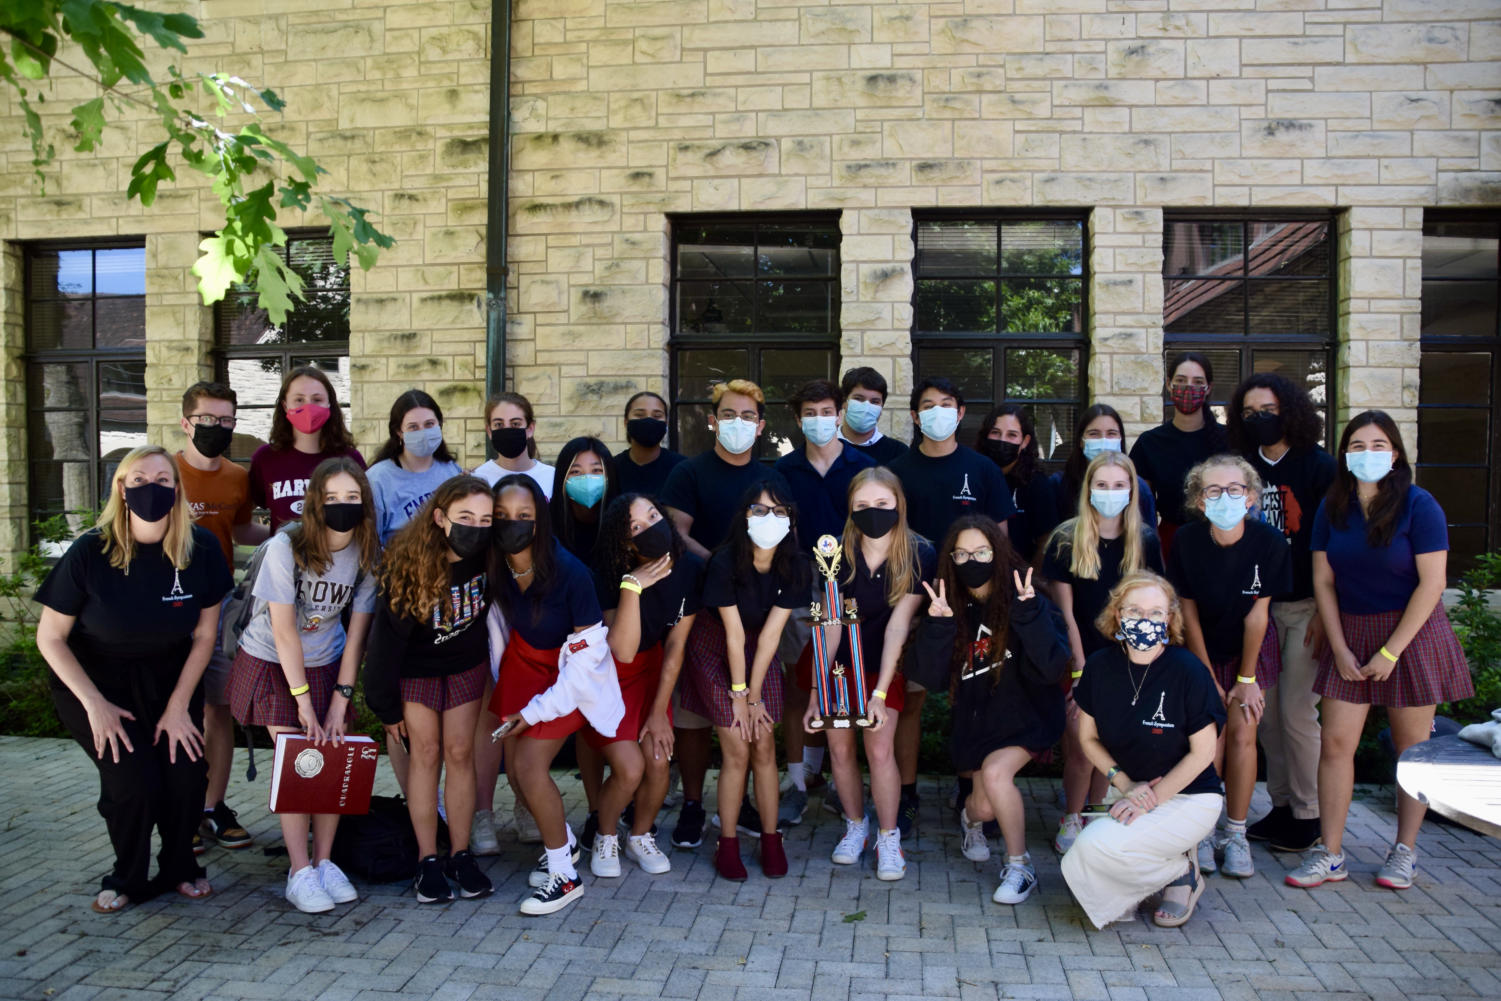 French students won first place at the Texas French Symposium last month, with one of the largest teams to have participated since St. John's began competing in the event nine years ago.